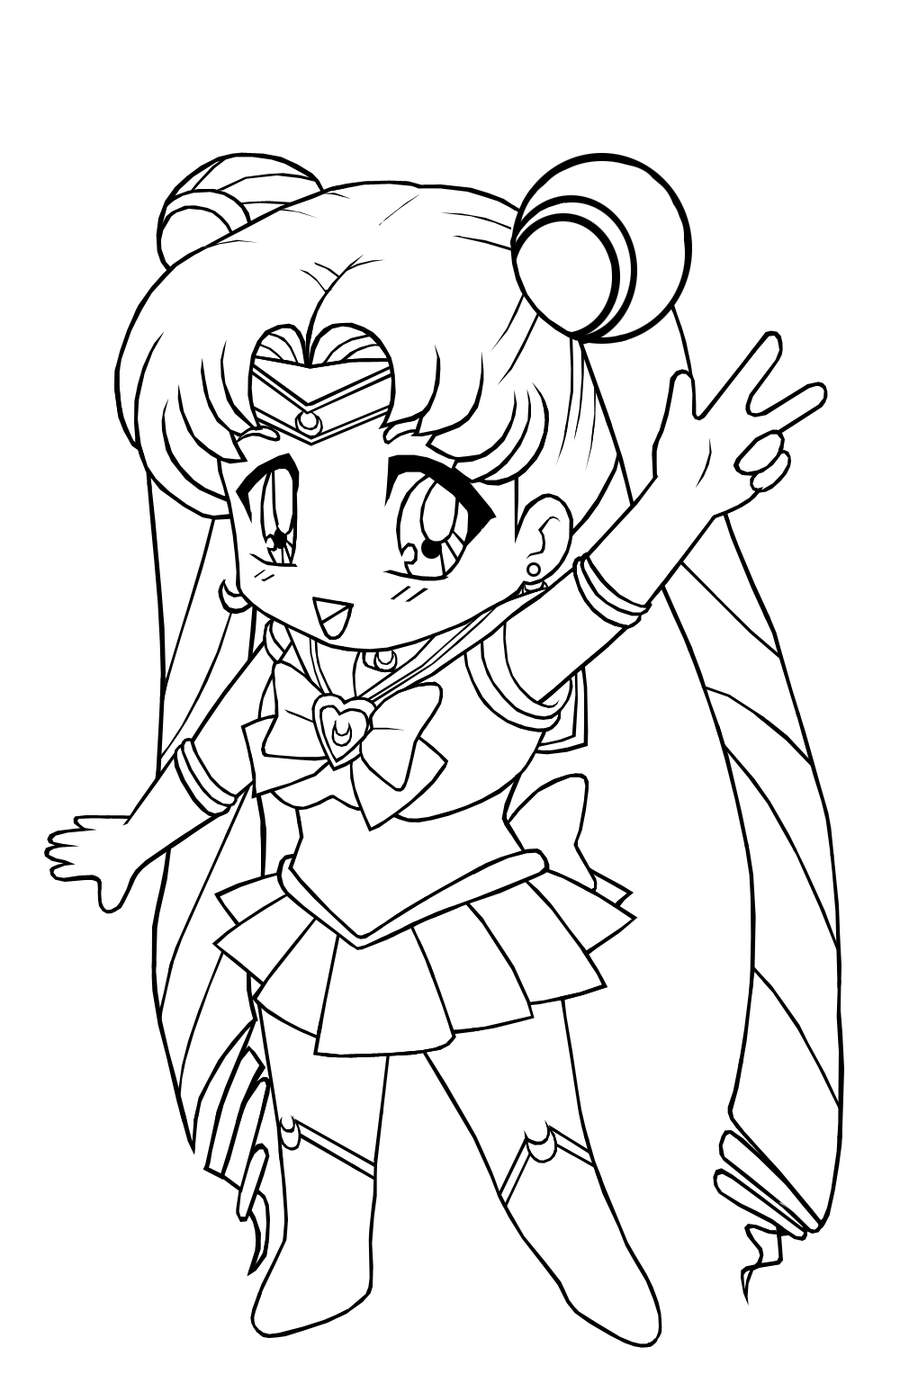 coloring pages for kids online zebra coloring pages free printable kids coloring pages online kids pages coloring for